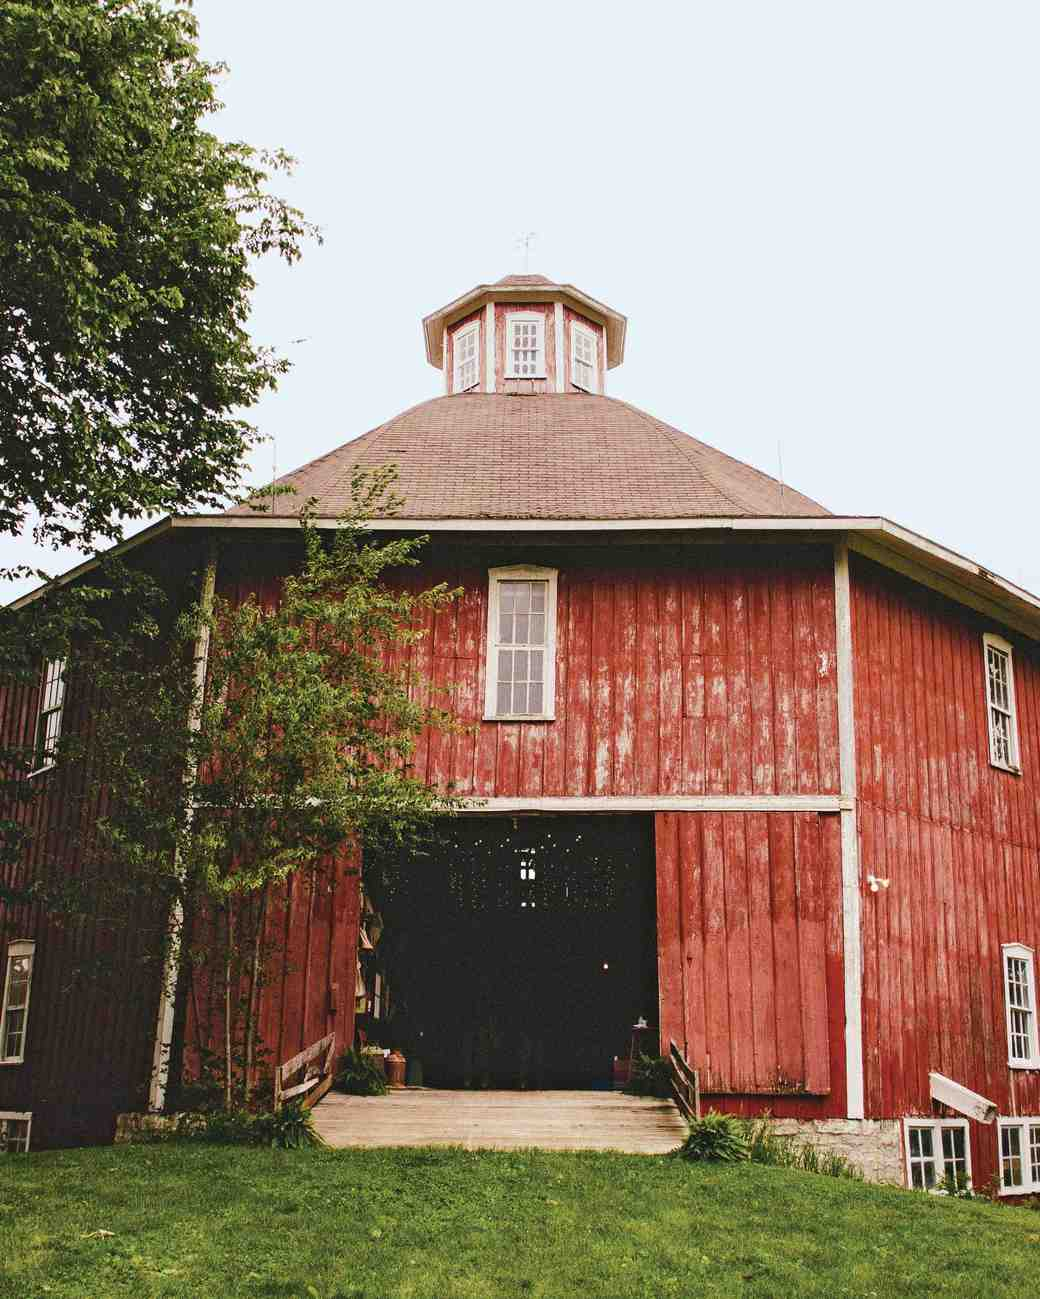 chase-drew-real-wedding-barn-location.jpg